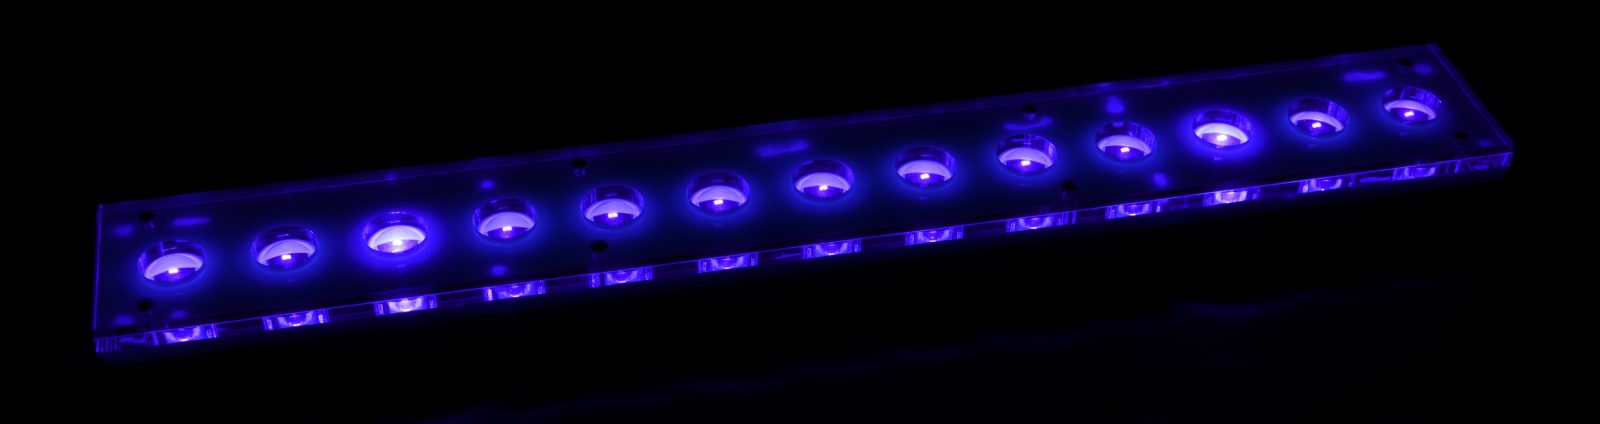 Super Slim Line LED azul-violeta